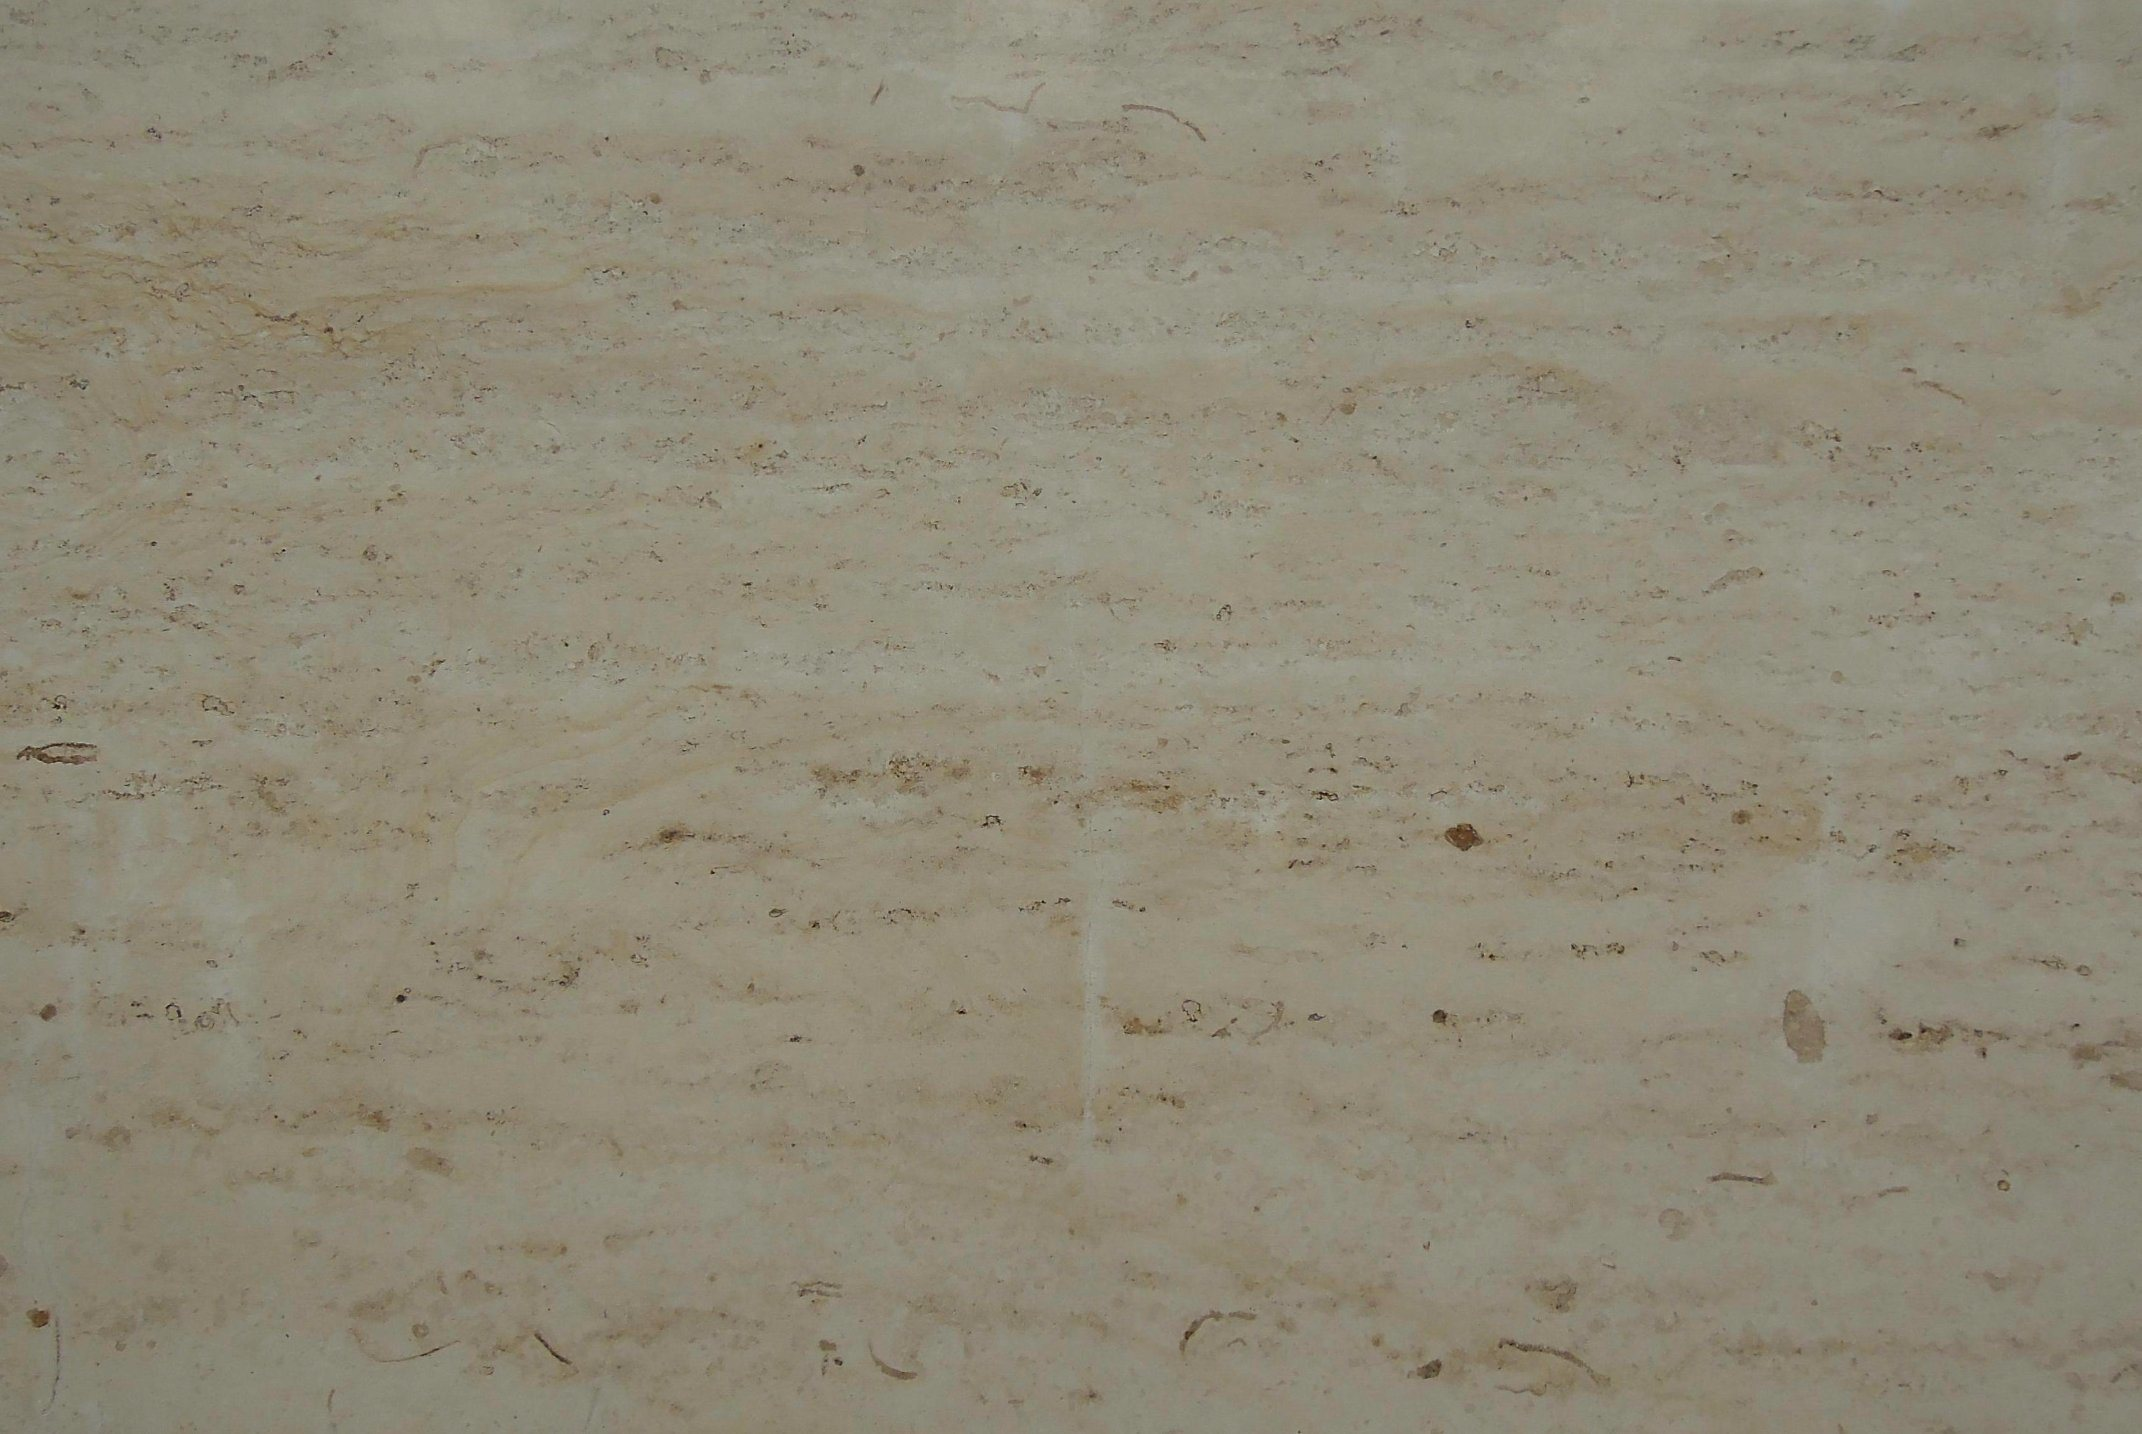 Natural Polish Honed Limestone/Mocha Jura Beige Travertine Wall Flooring Tile